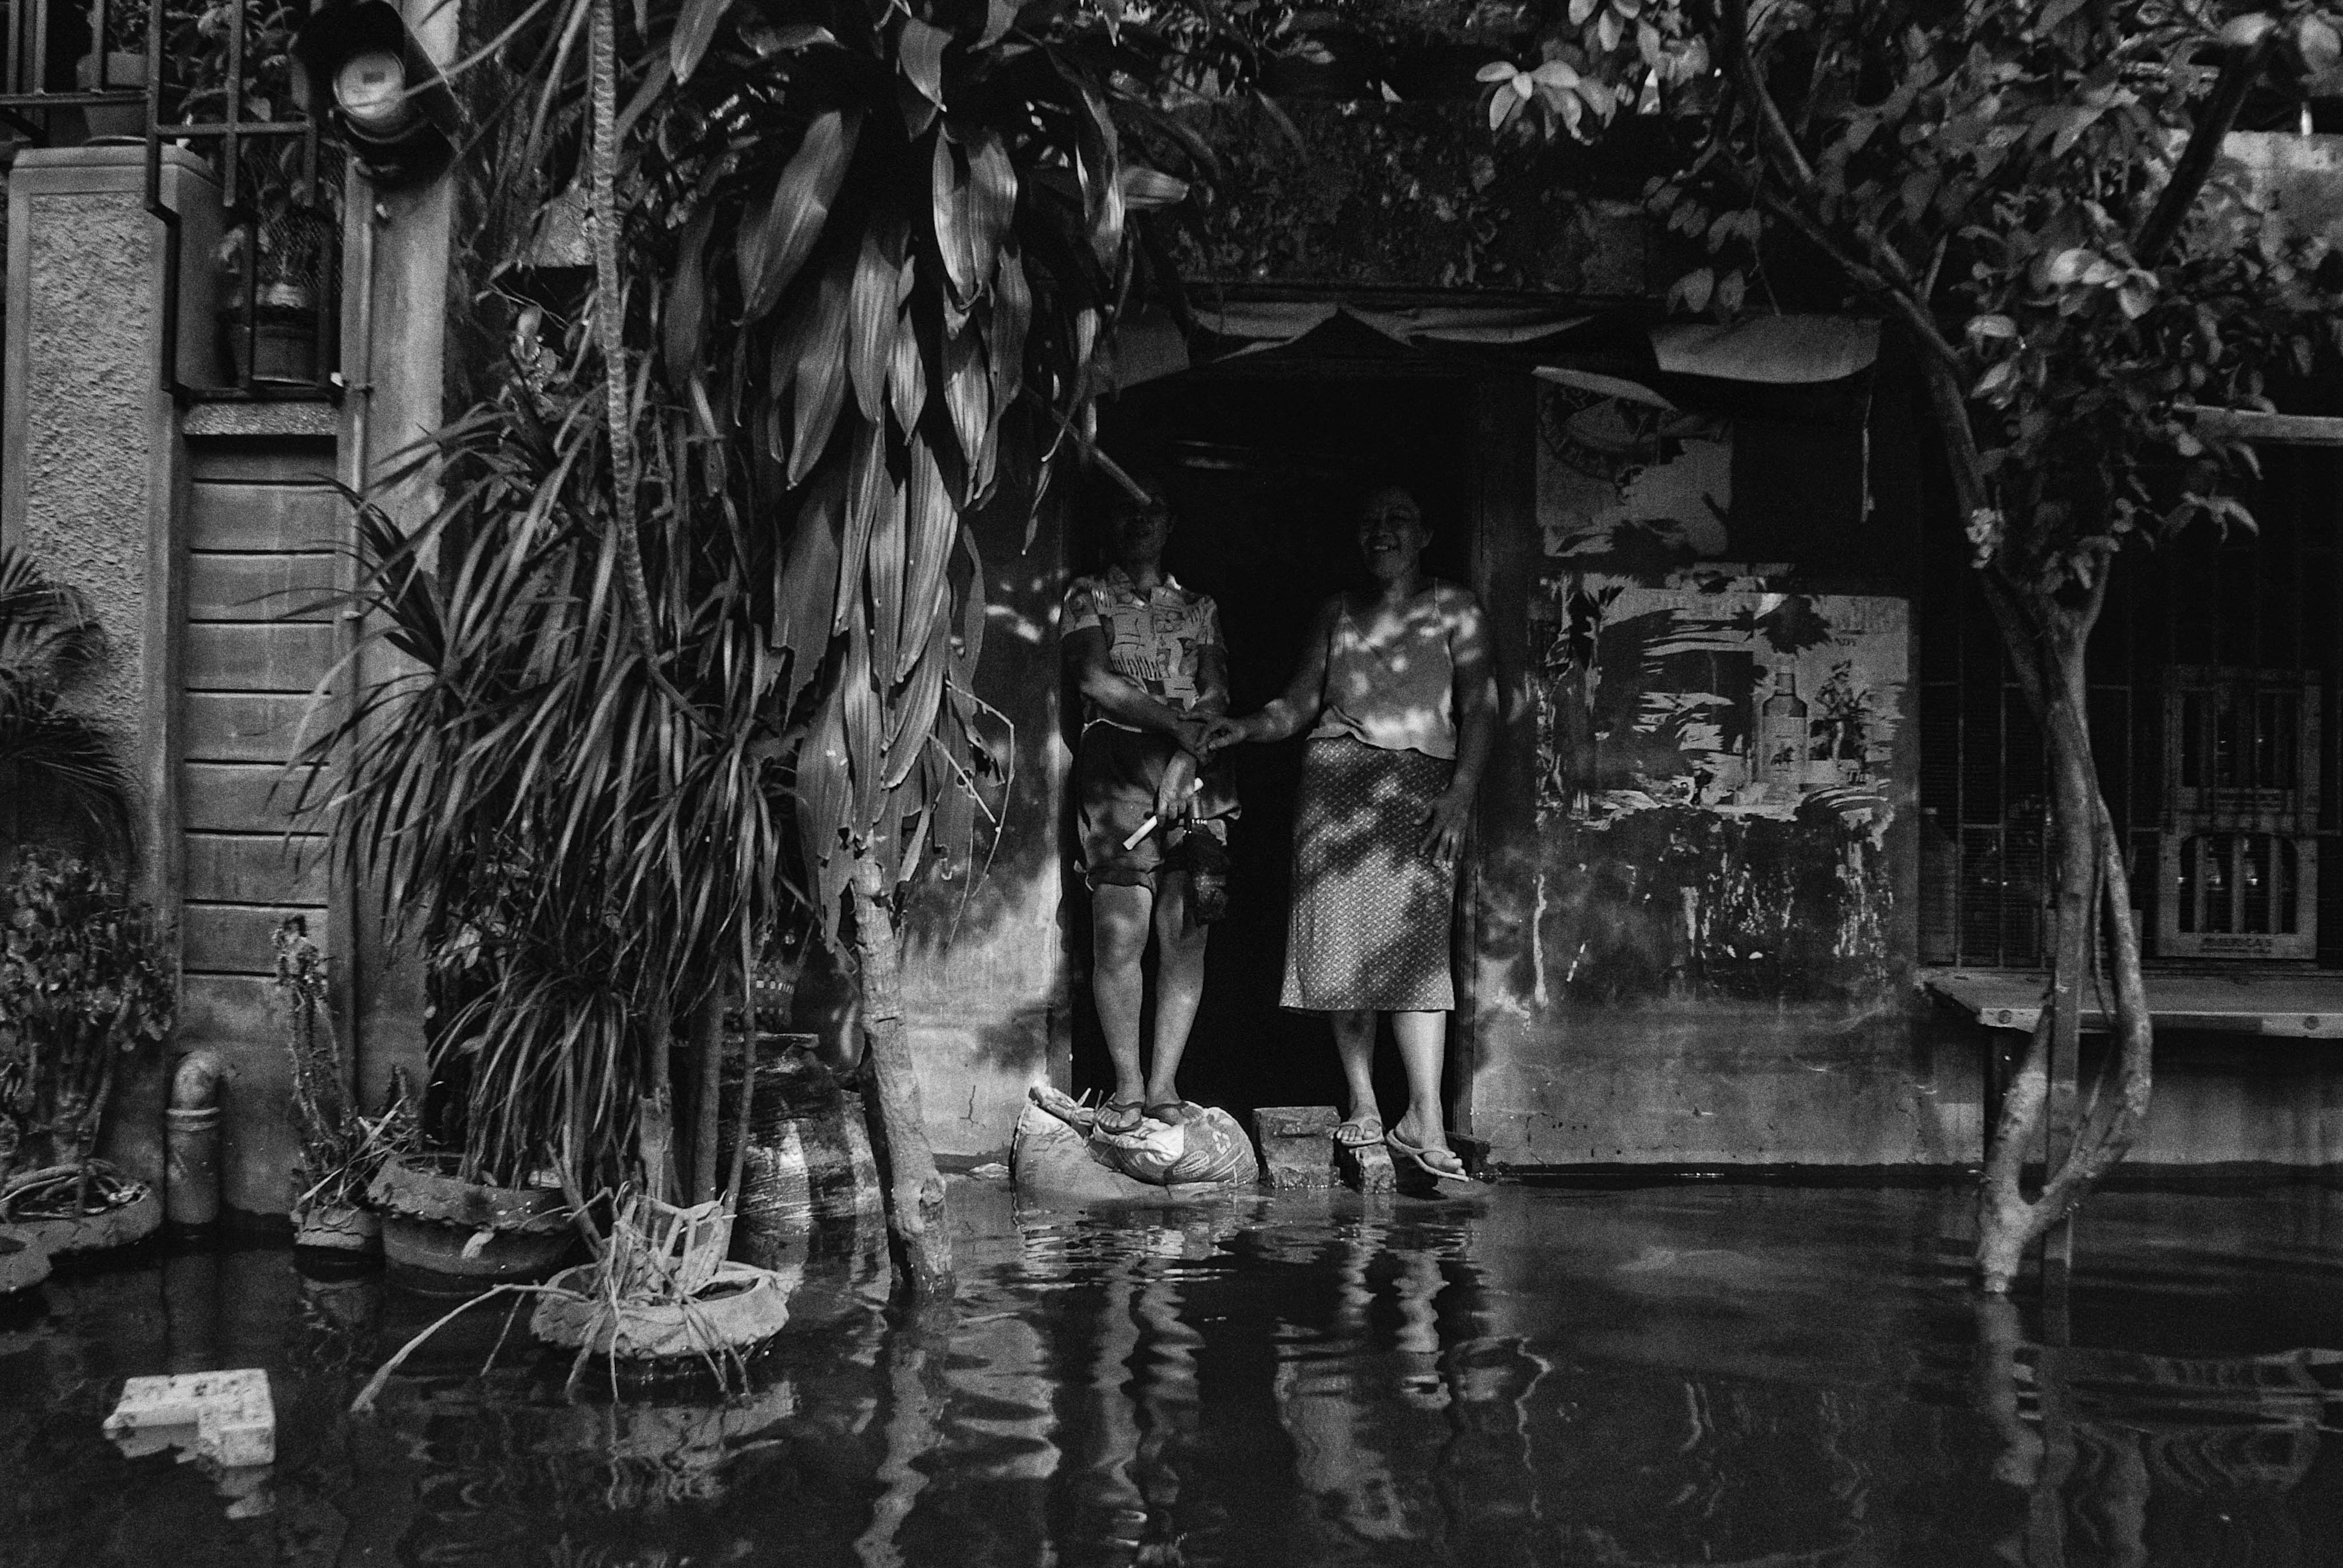 Residents wait for relief packs in Taguig city as floodwaters inundate their access to the town center on Oct. 10, 2009.